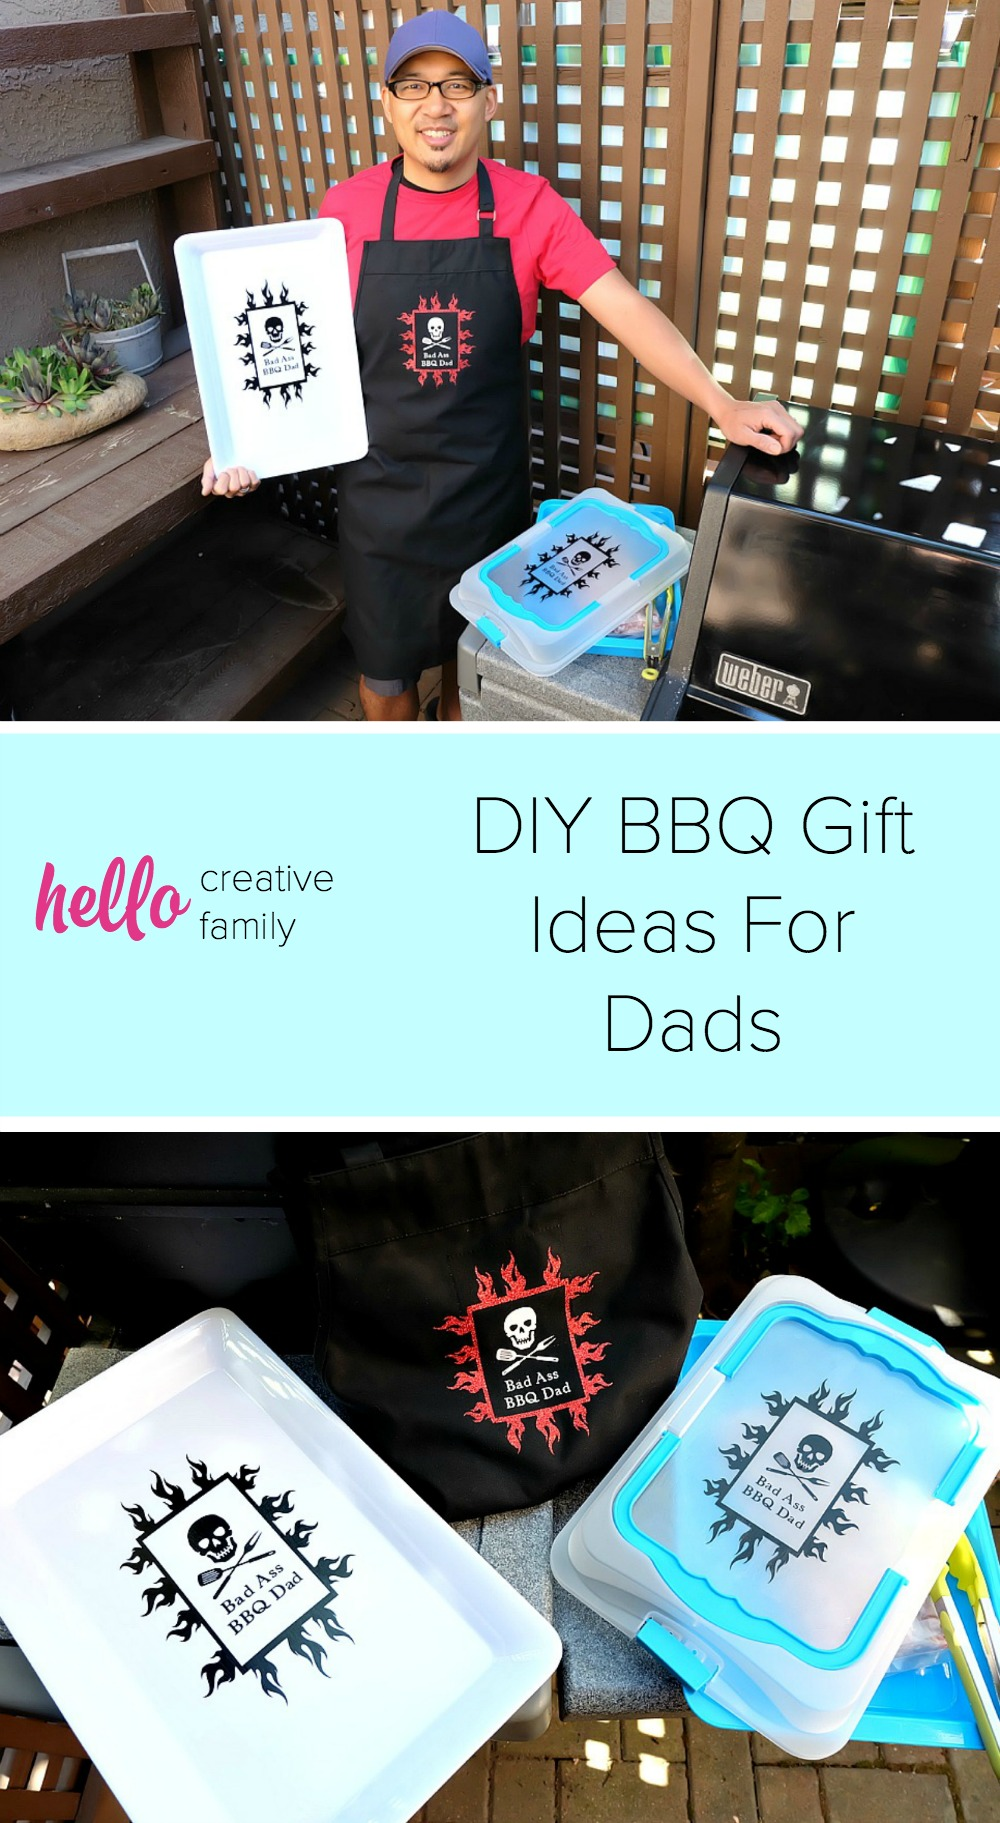 Christmas Gift Ideas 2017 For Father : Diy bbq gift ideas for dads made on the cricut perfect